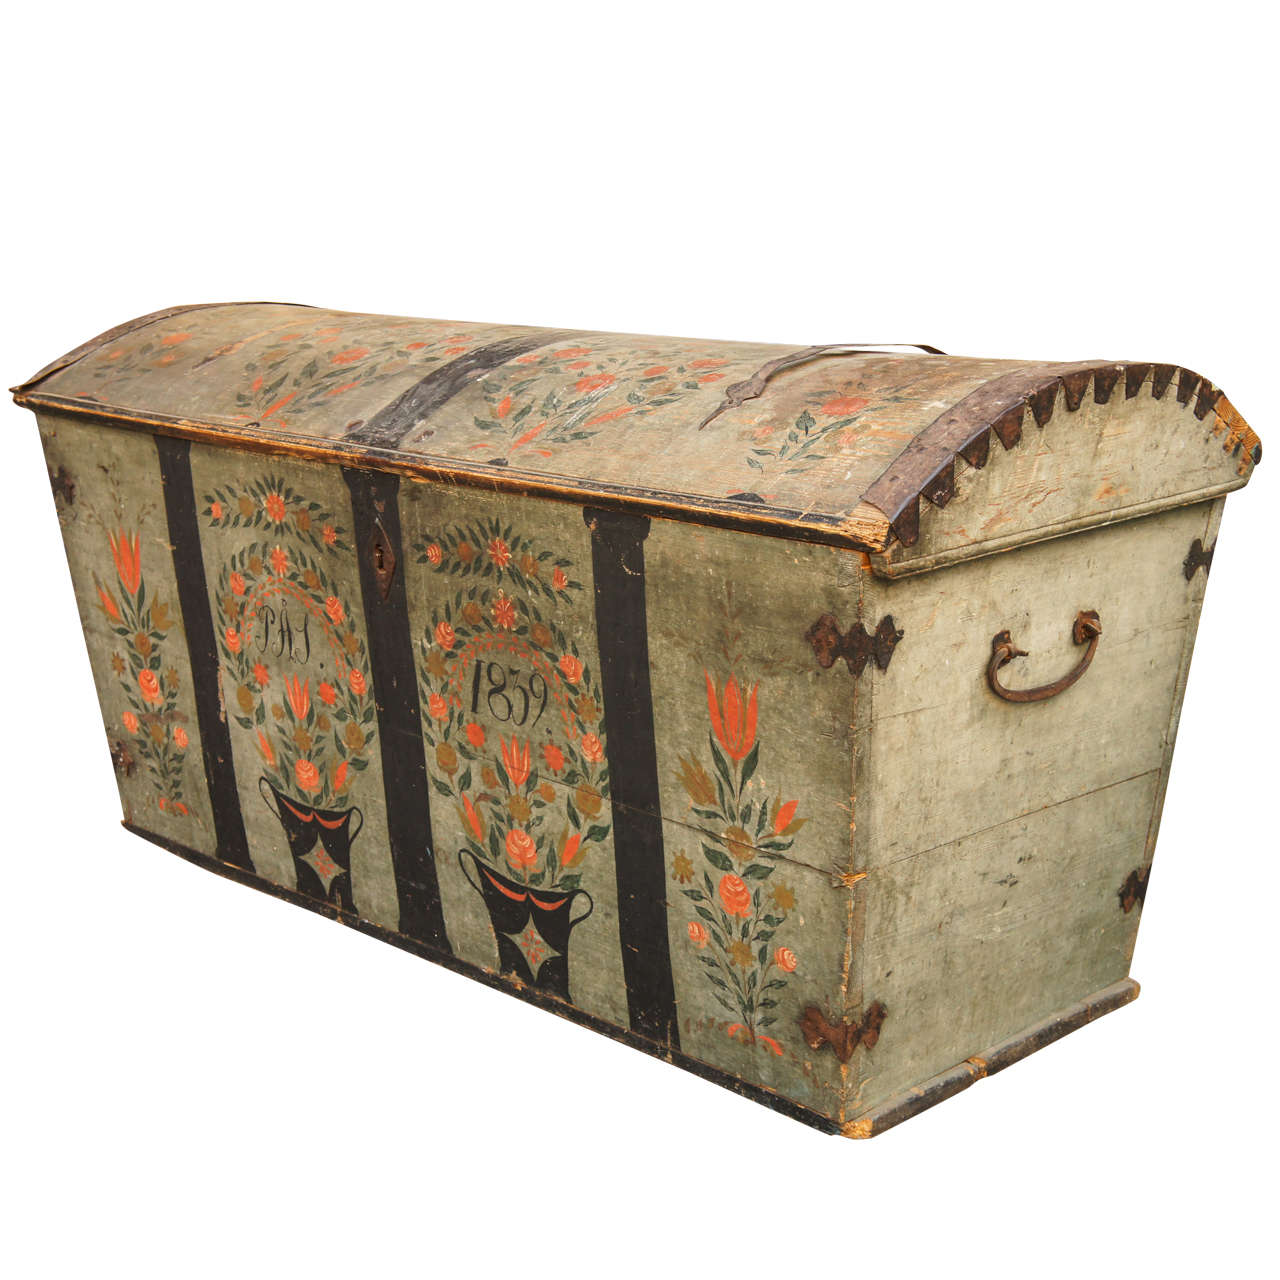 19th Century Danish Bridal Chest